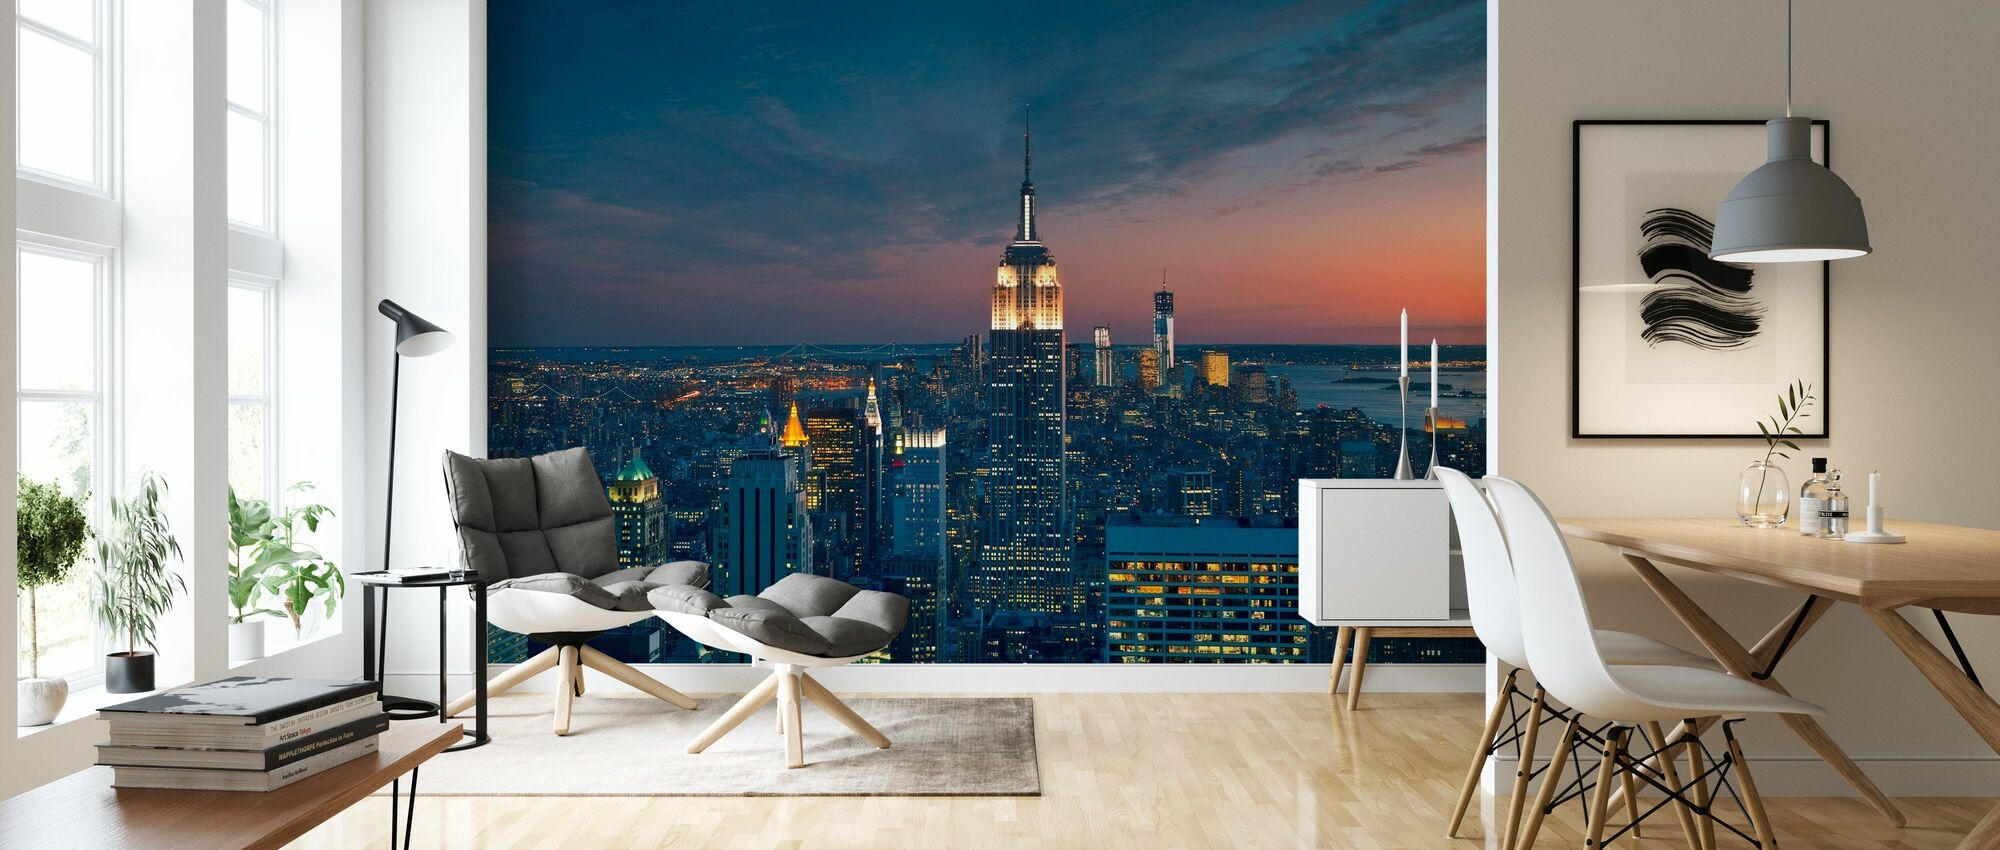 Aerial View of Manhattan at Sunset - Wallpaper - Living Room